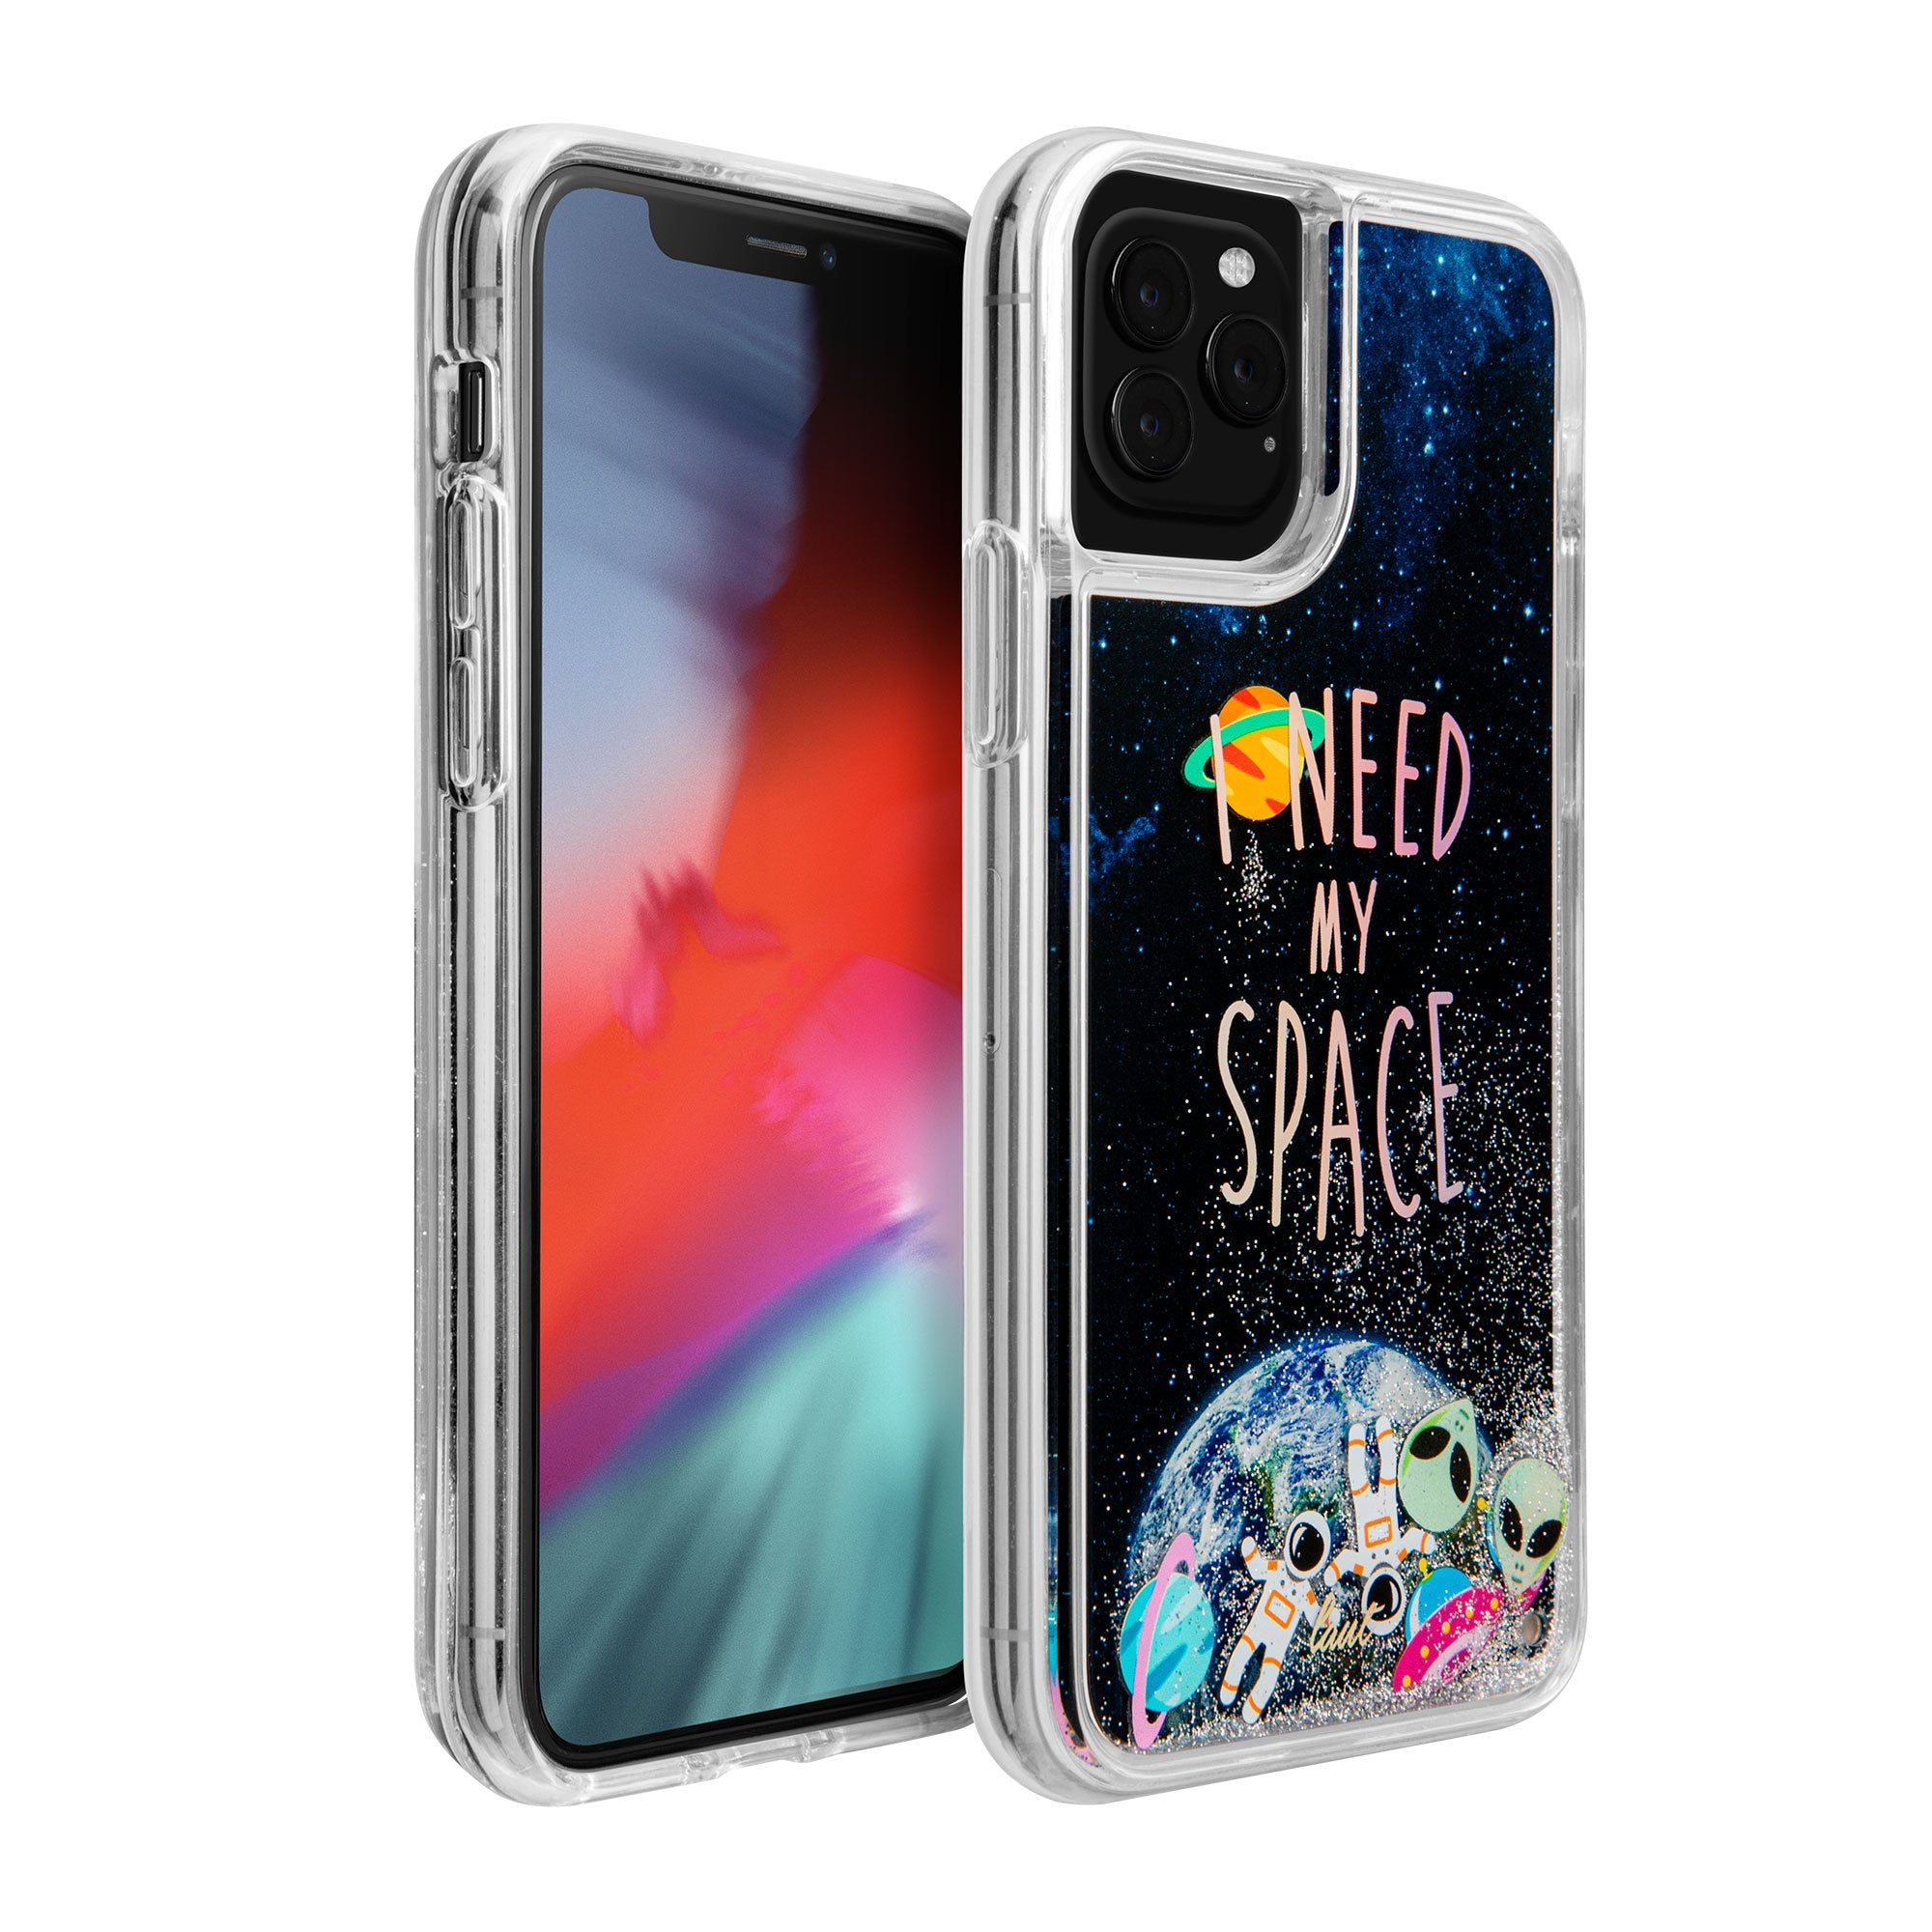 LAUT-GLITTER SPACE for iPhone 11 | iPhone 11 Pro | iPhone 11 Pro Max-Case-iPhone 11 / iPhone 11 Pro / iPhone 11 Pro Max